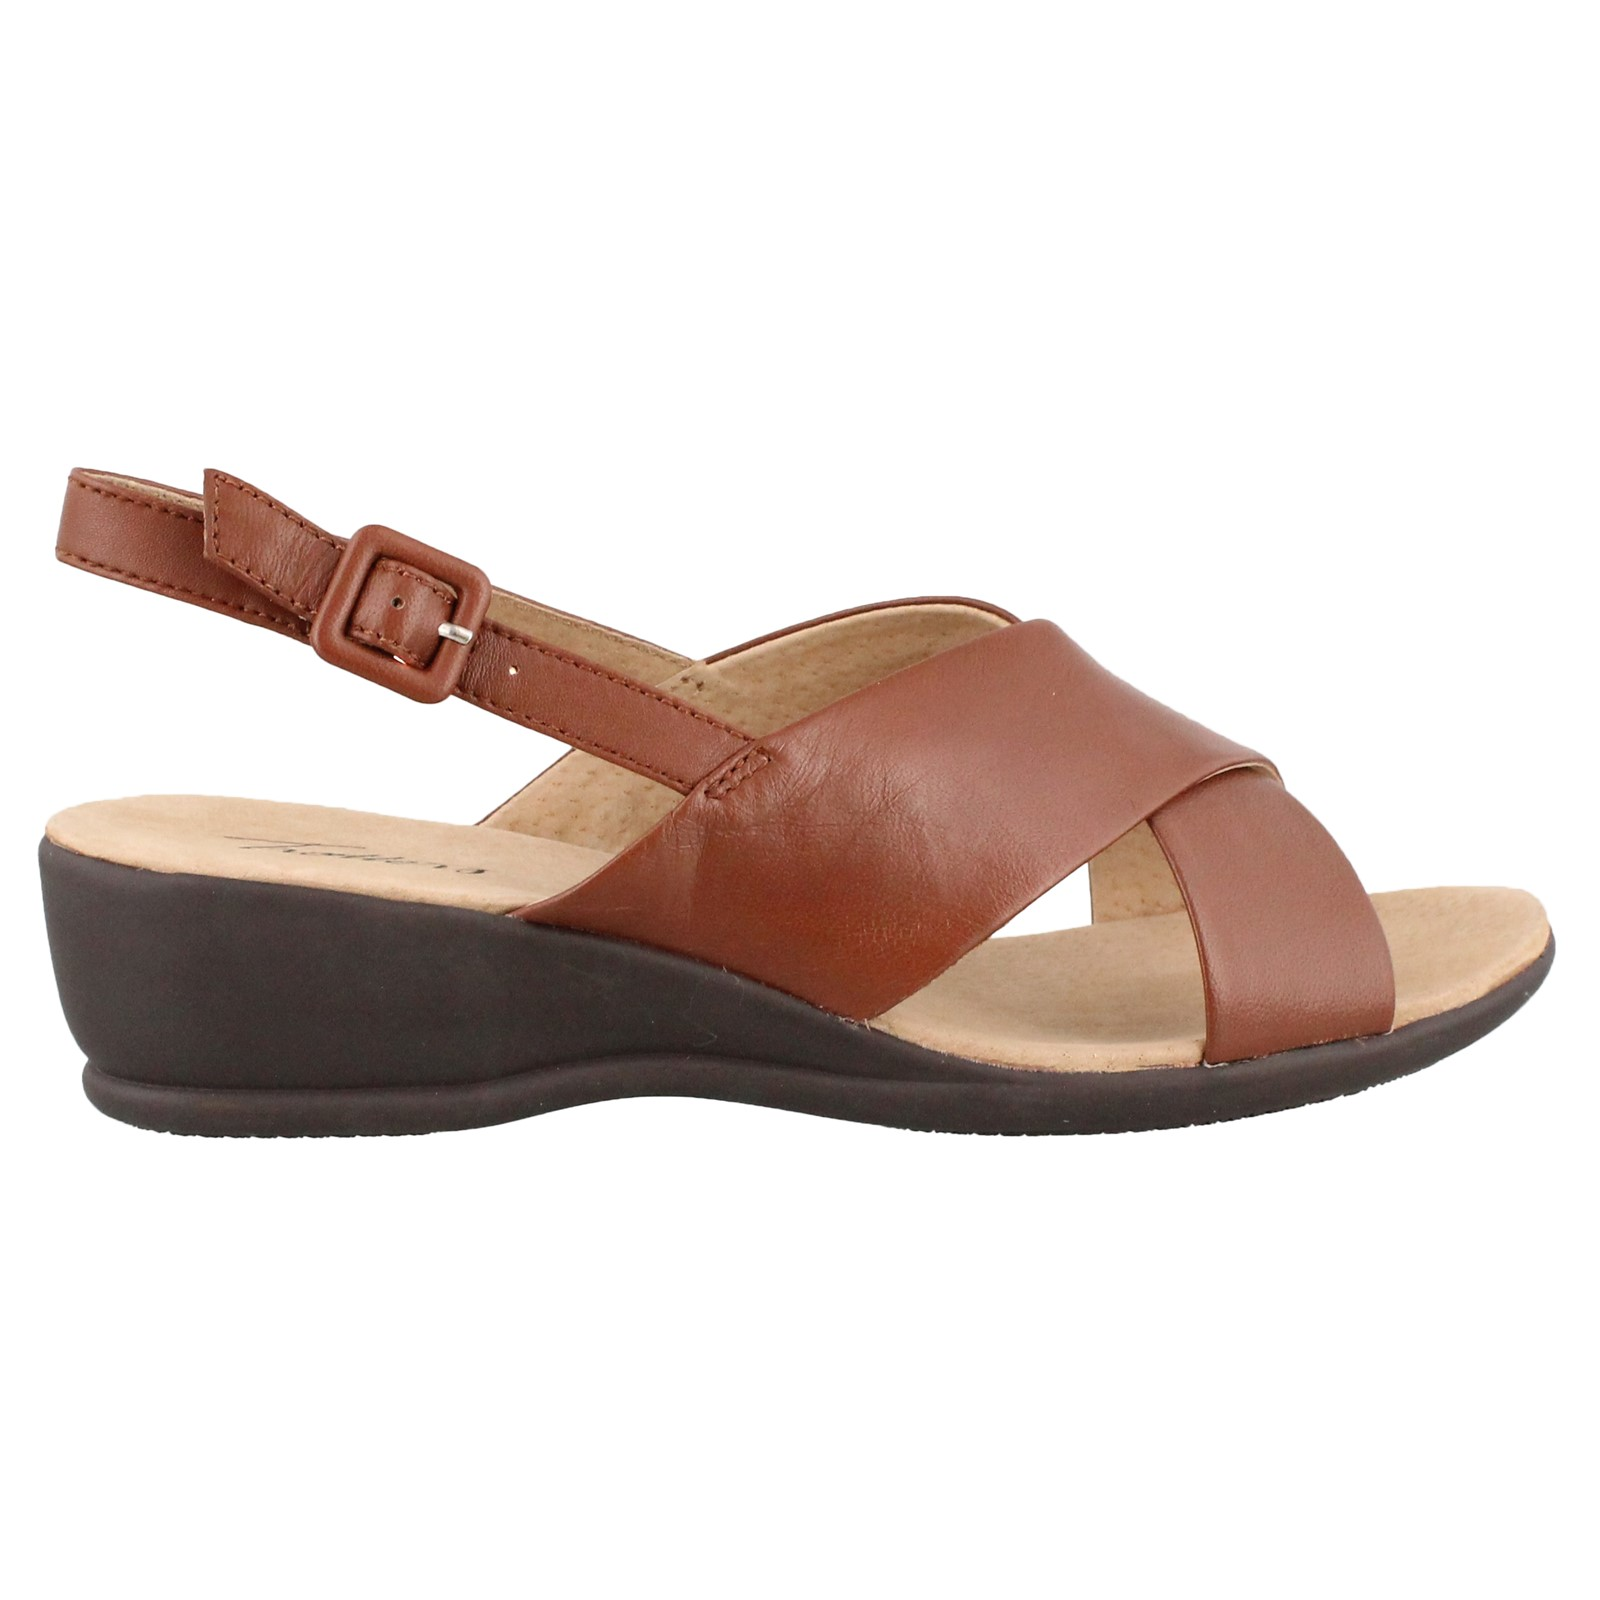 Women's Trotters, Lee Low Heel Sandal